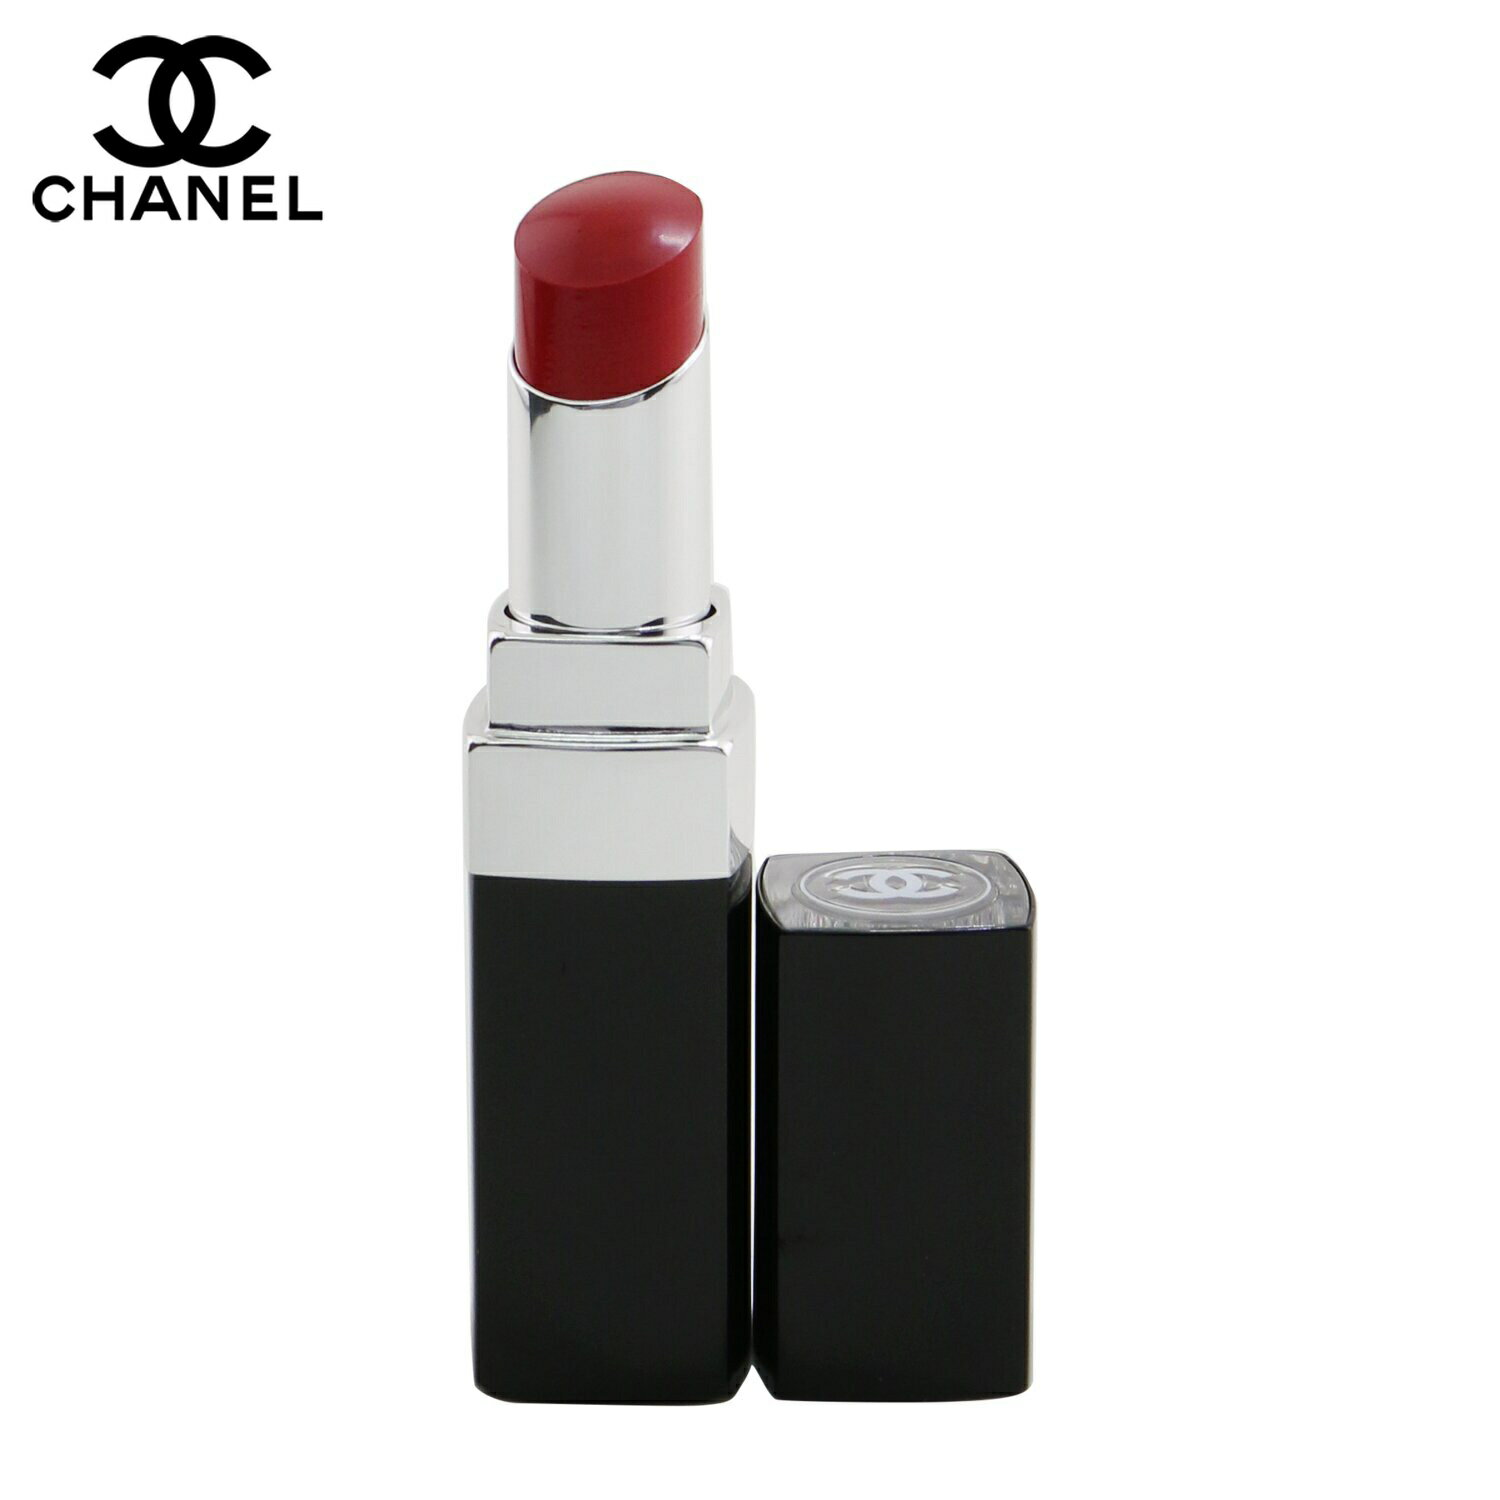 CHANEL 128 Chanel Rouge Coco Bloom Hydrating Plu...